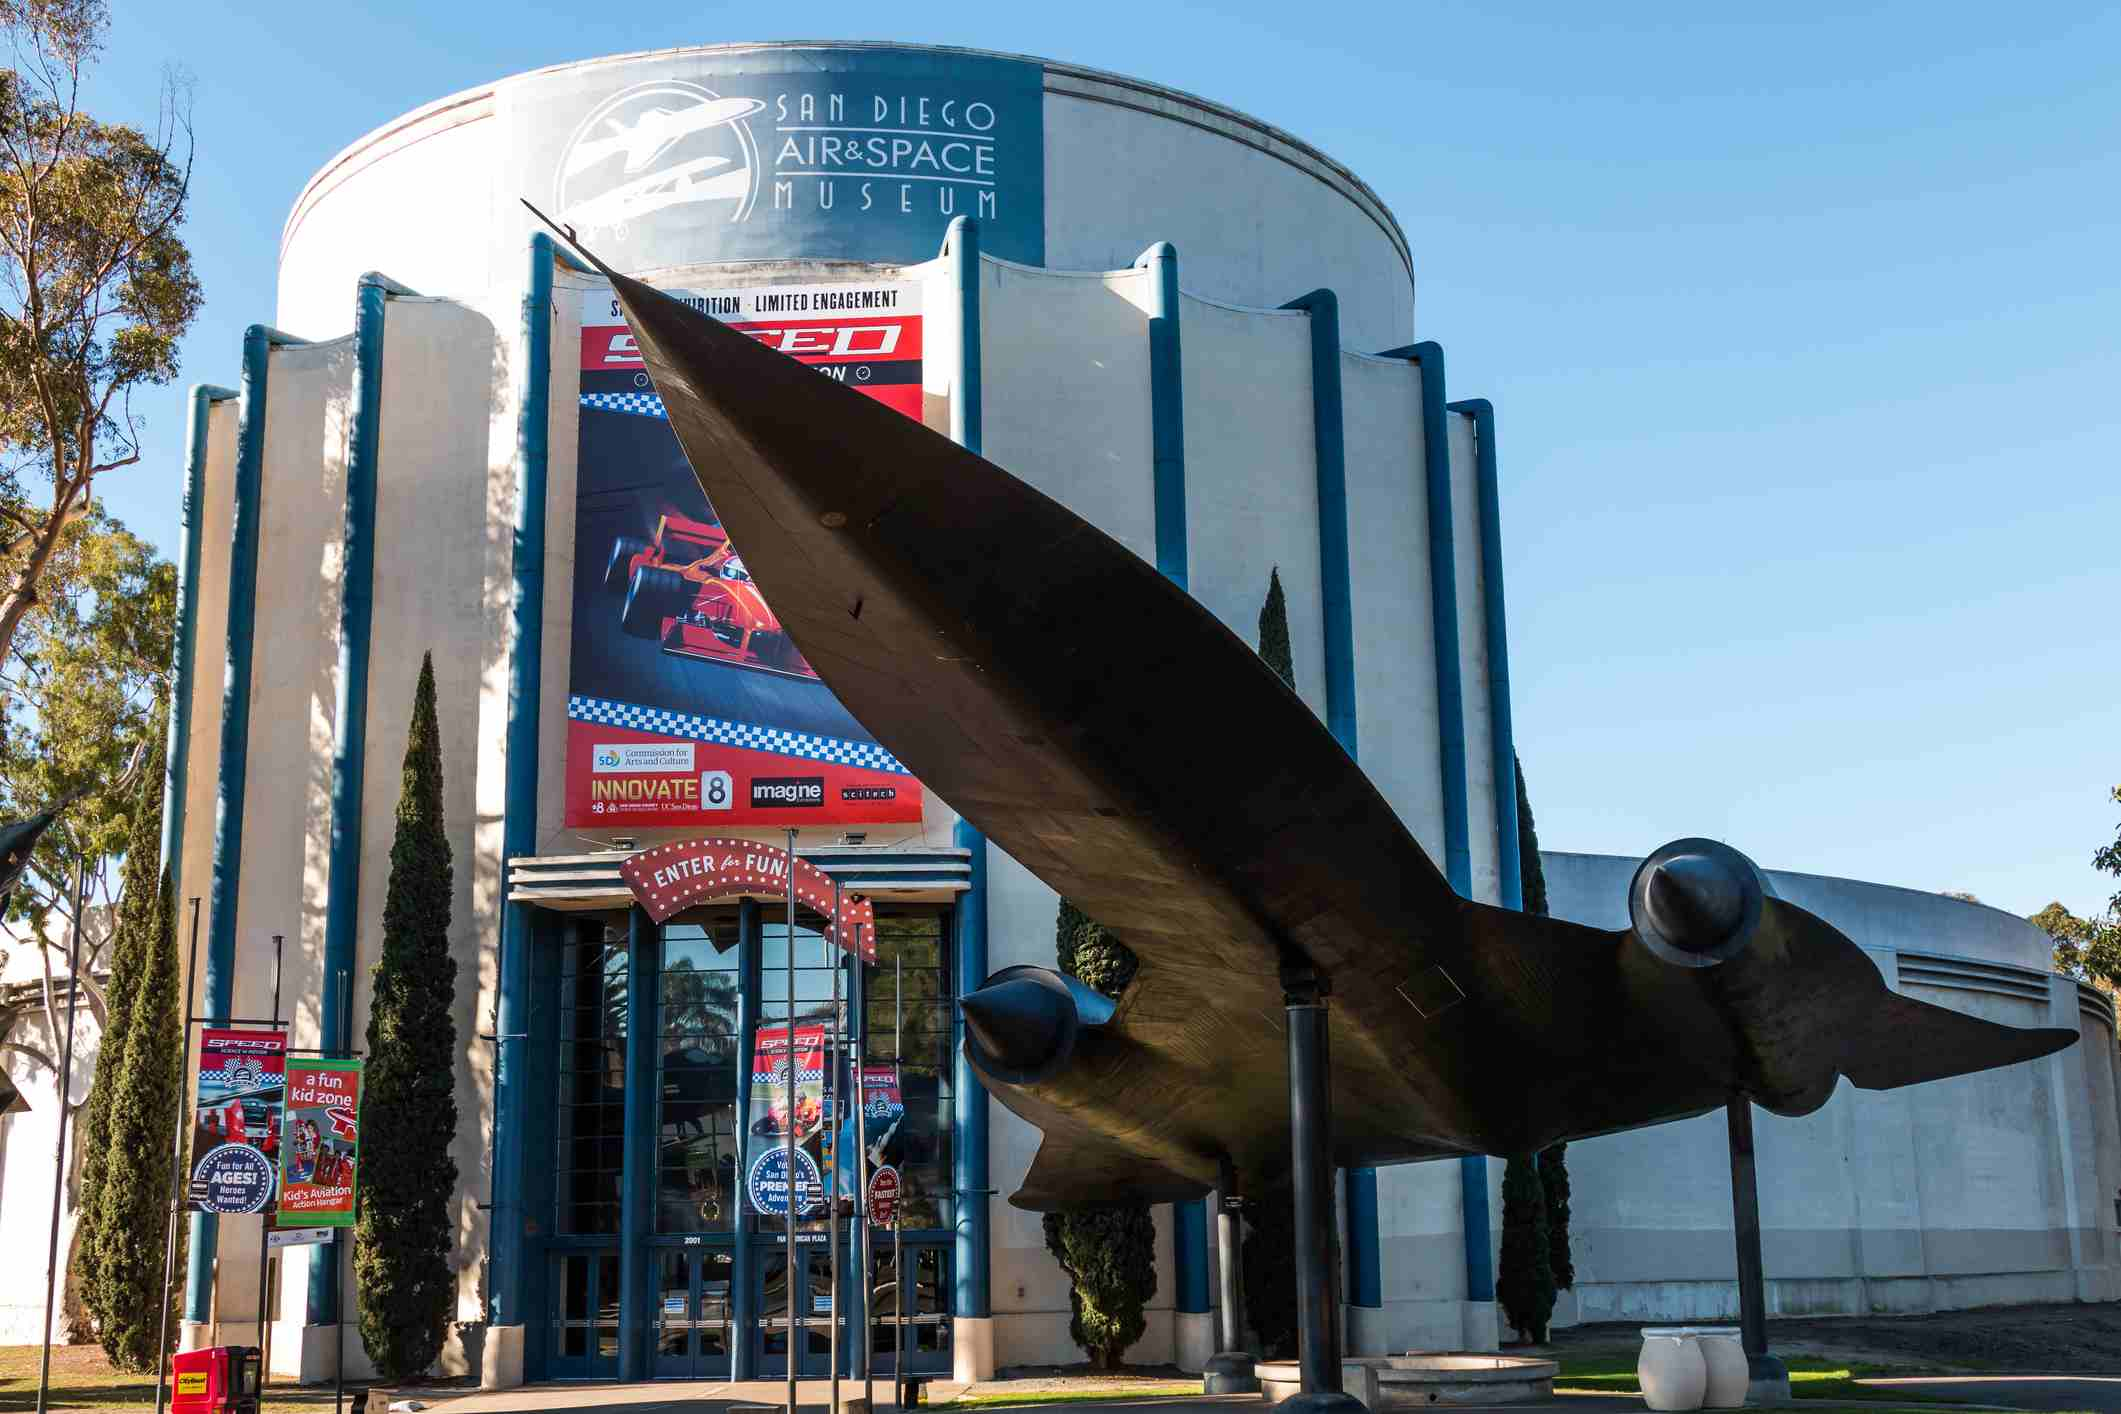 Balboa Park Air And Space Museum In San Diego